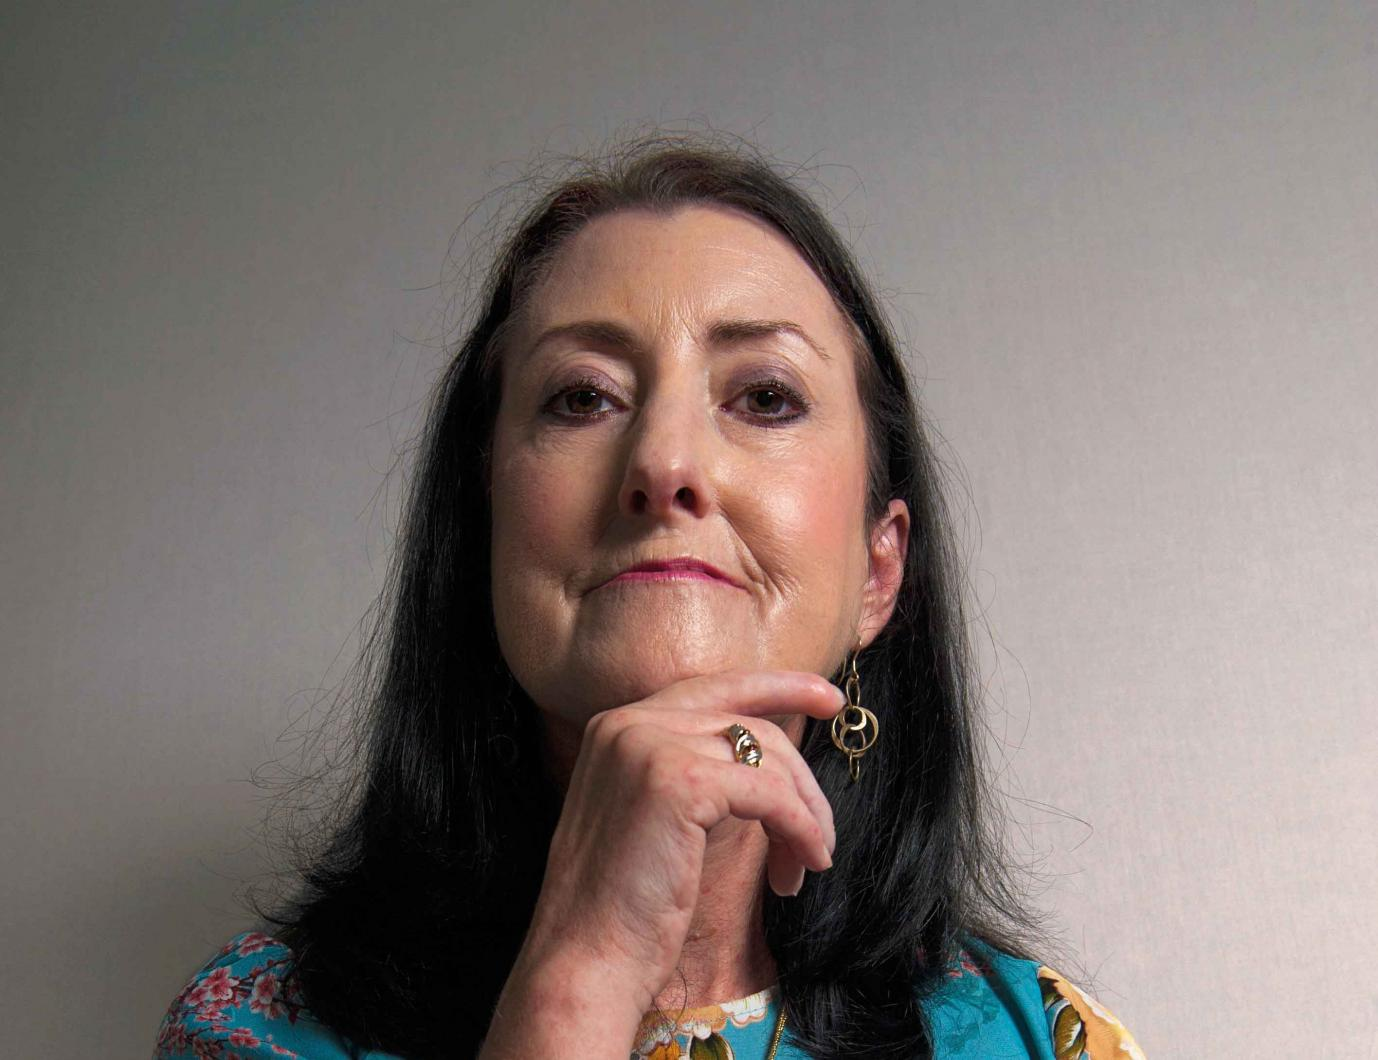 Woman with scleroderma posing